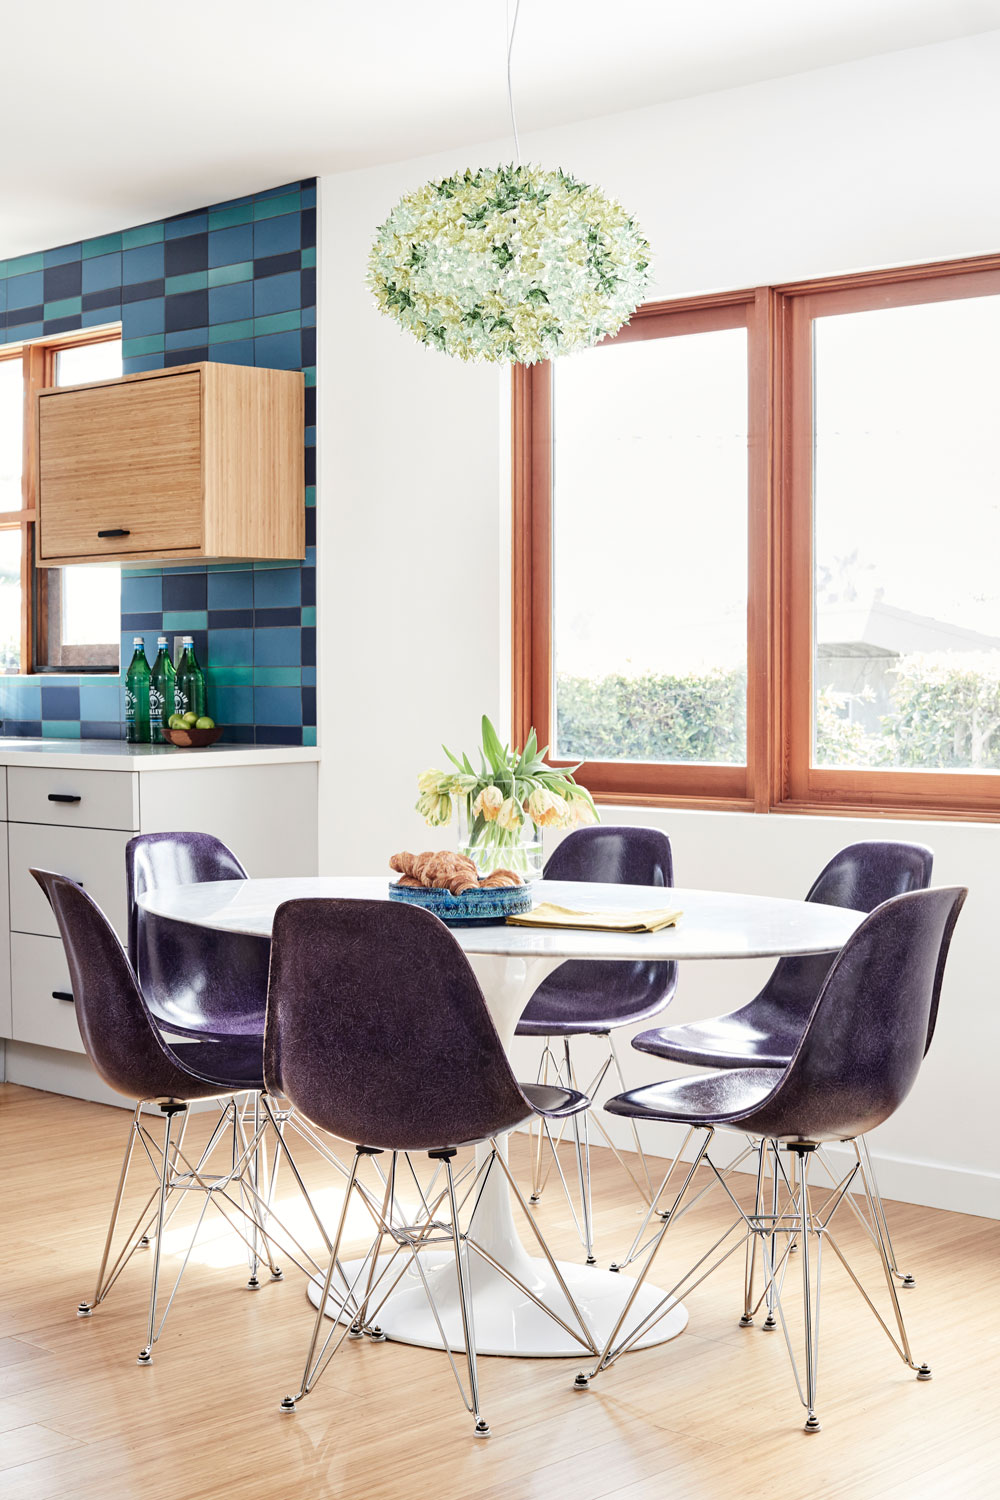 All that blue in the kitchen plays beautifully with these deep purple Case Study chairs and Bloom Pendant from Knoll.